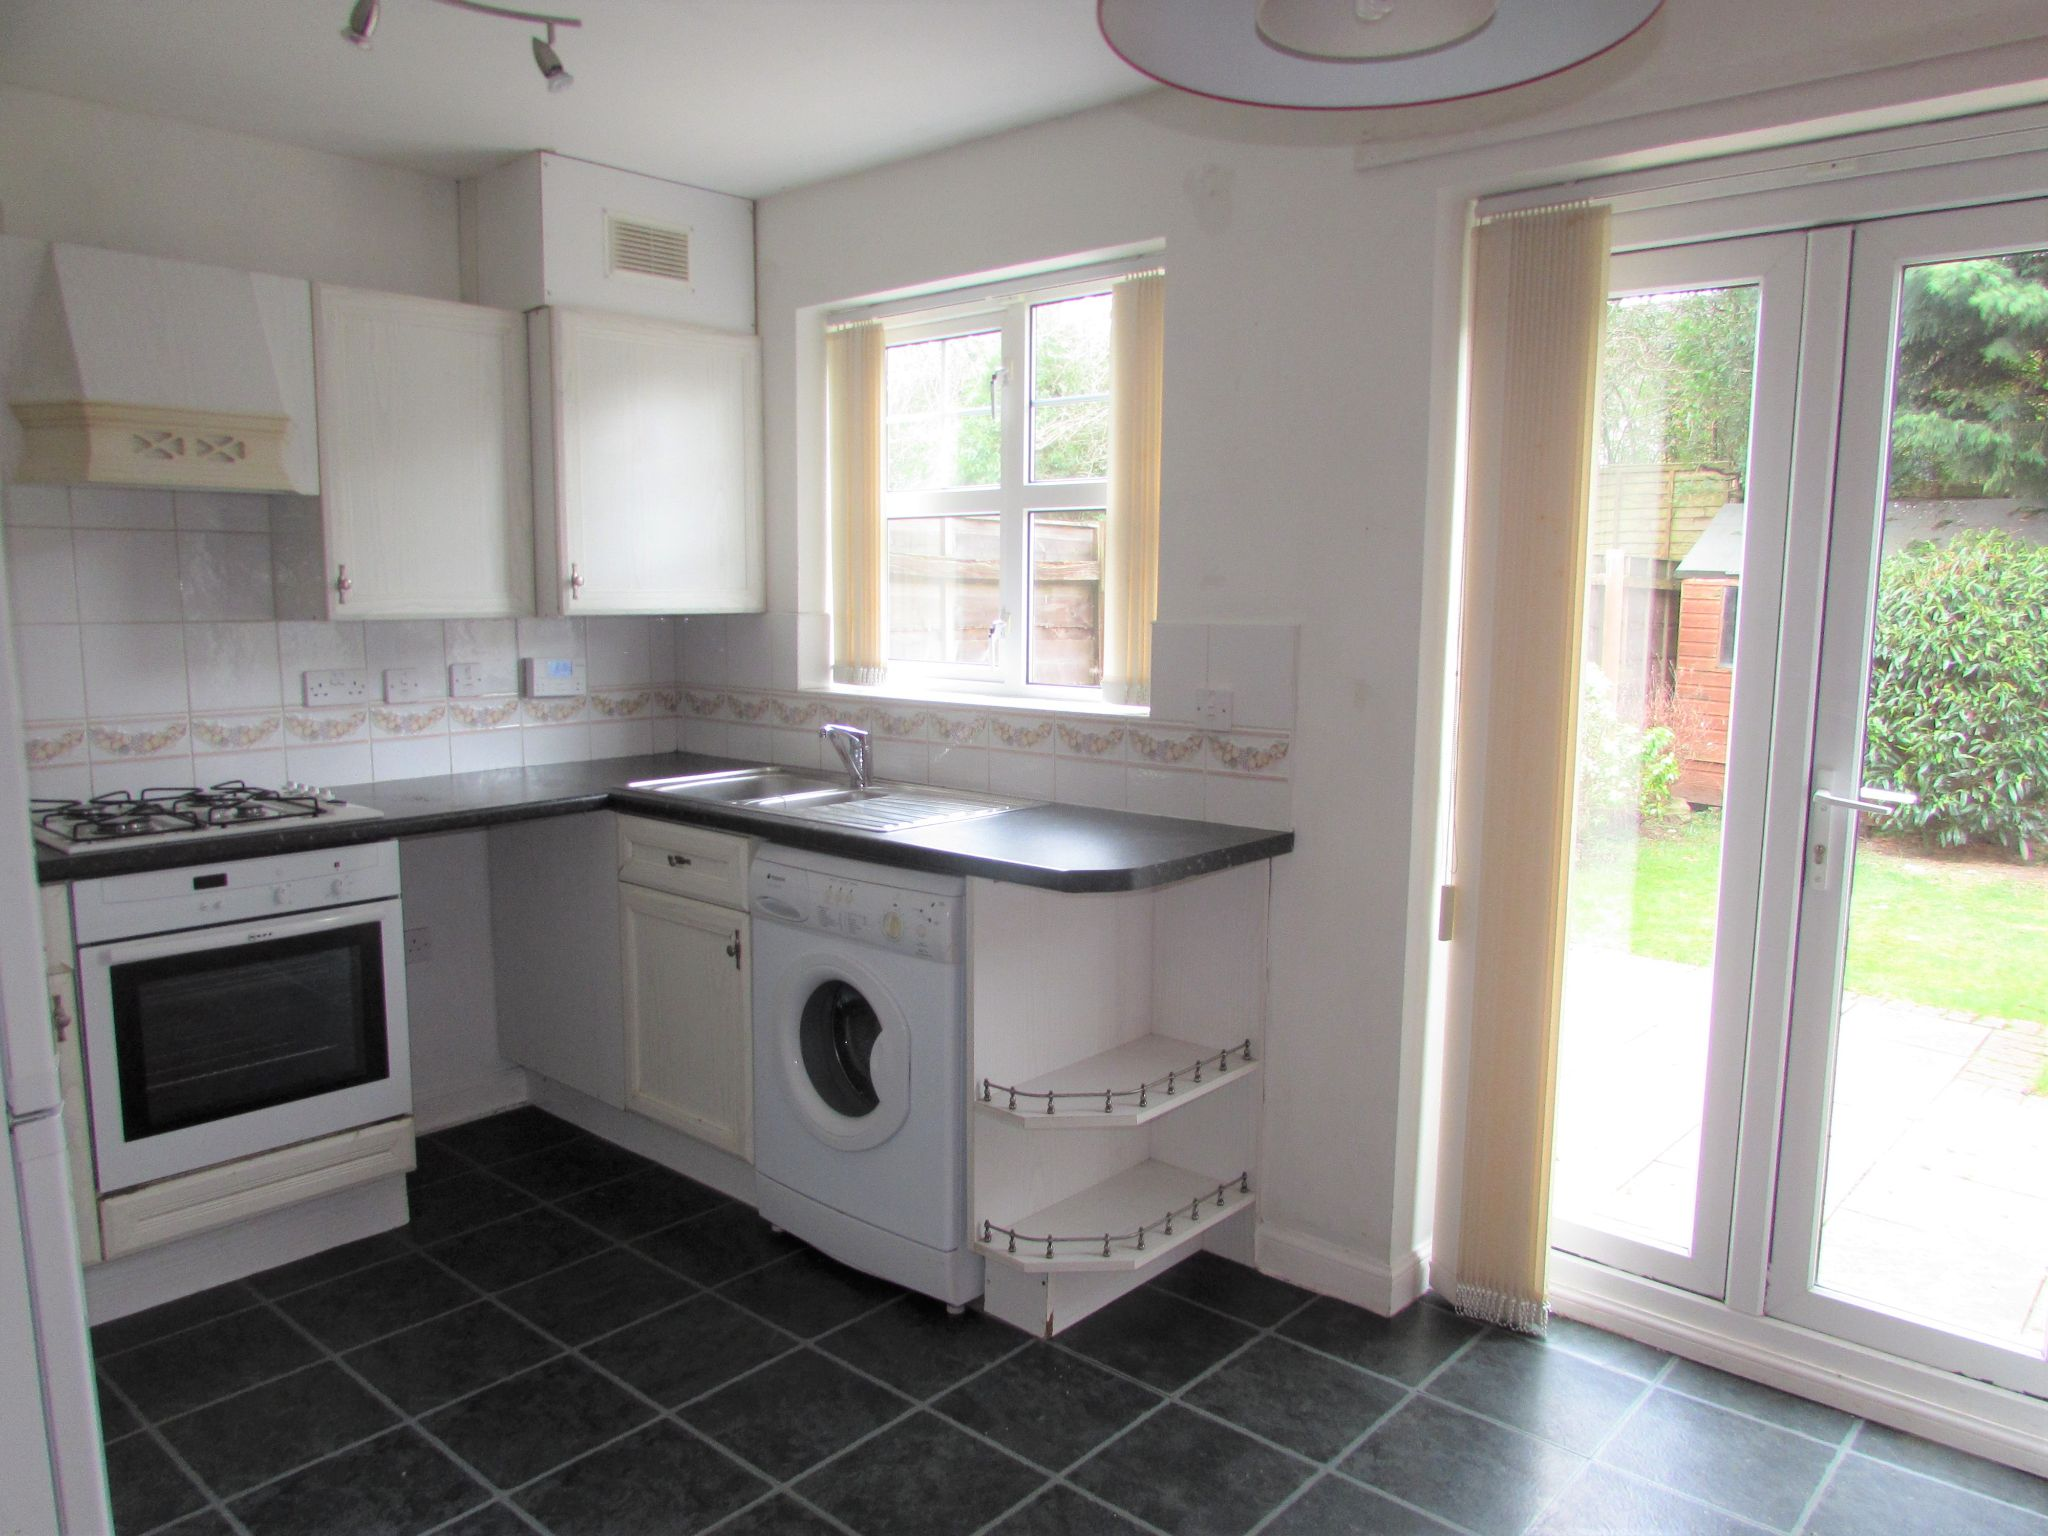 2 Bedroom Mid Terraced House To Rent - kitchen/dinimg